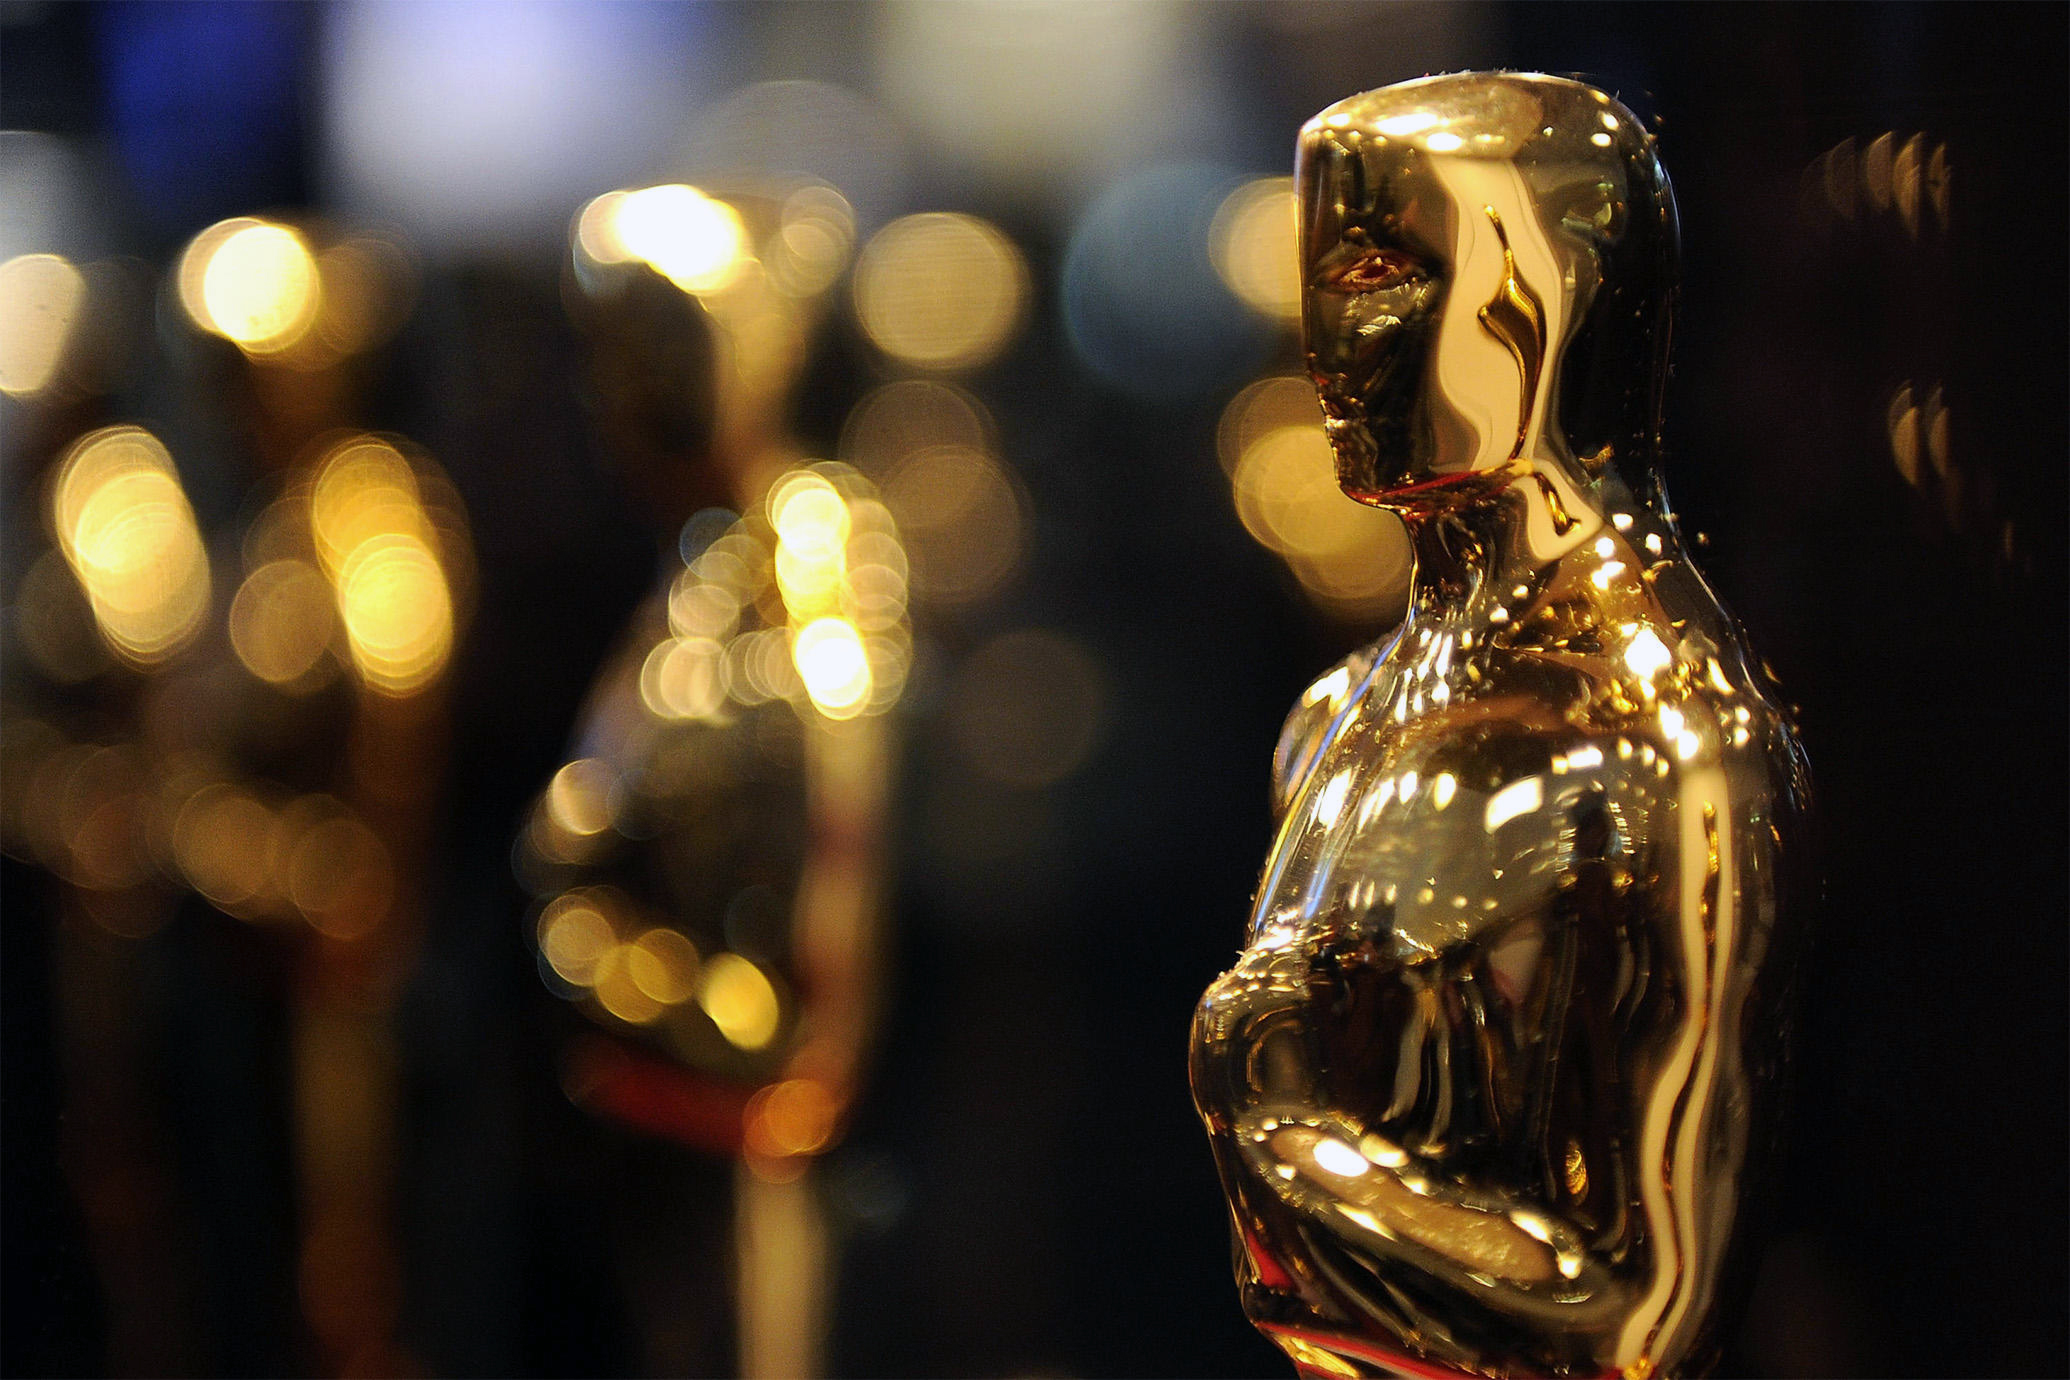 The Oscar for Best Digital Presence header, featuring a closeup of the golden oscar statue